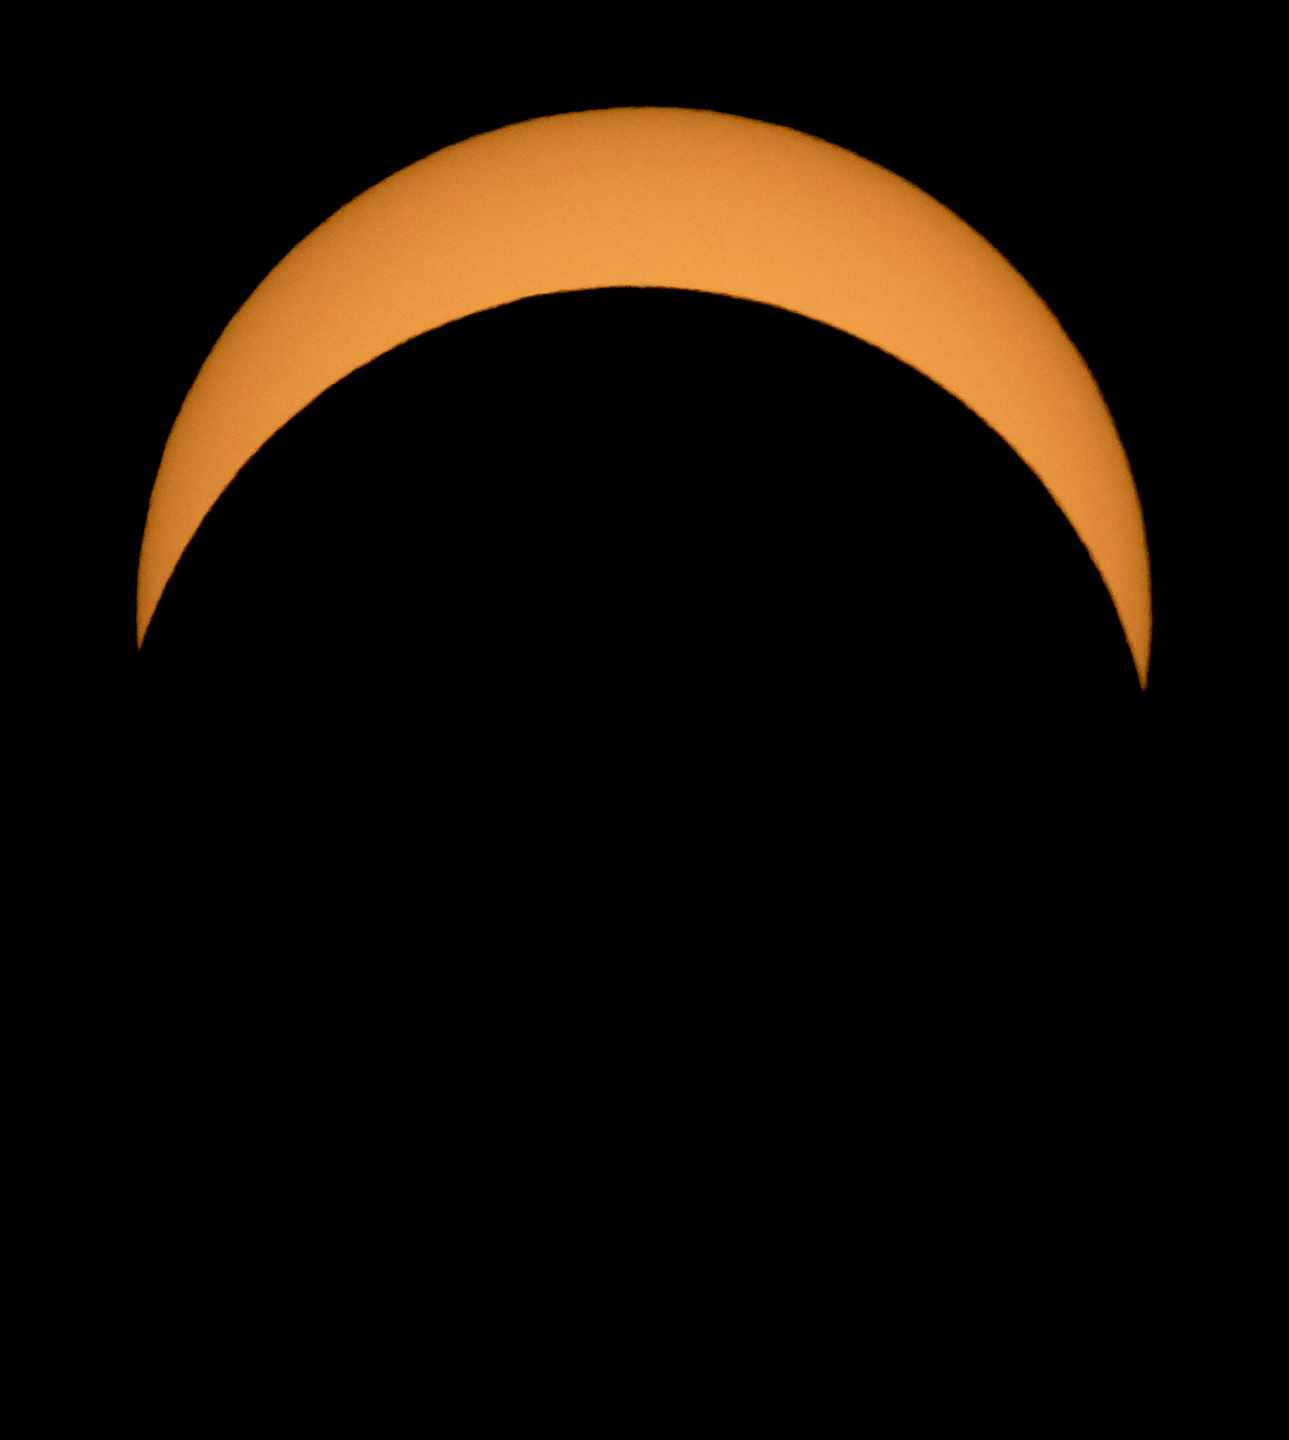 Eclipse solar del 21 de agosto de 2017 fotografiado en Washington | NASA/Bill Ingalls